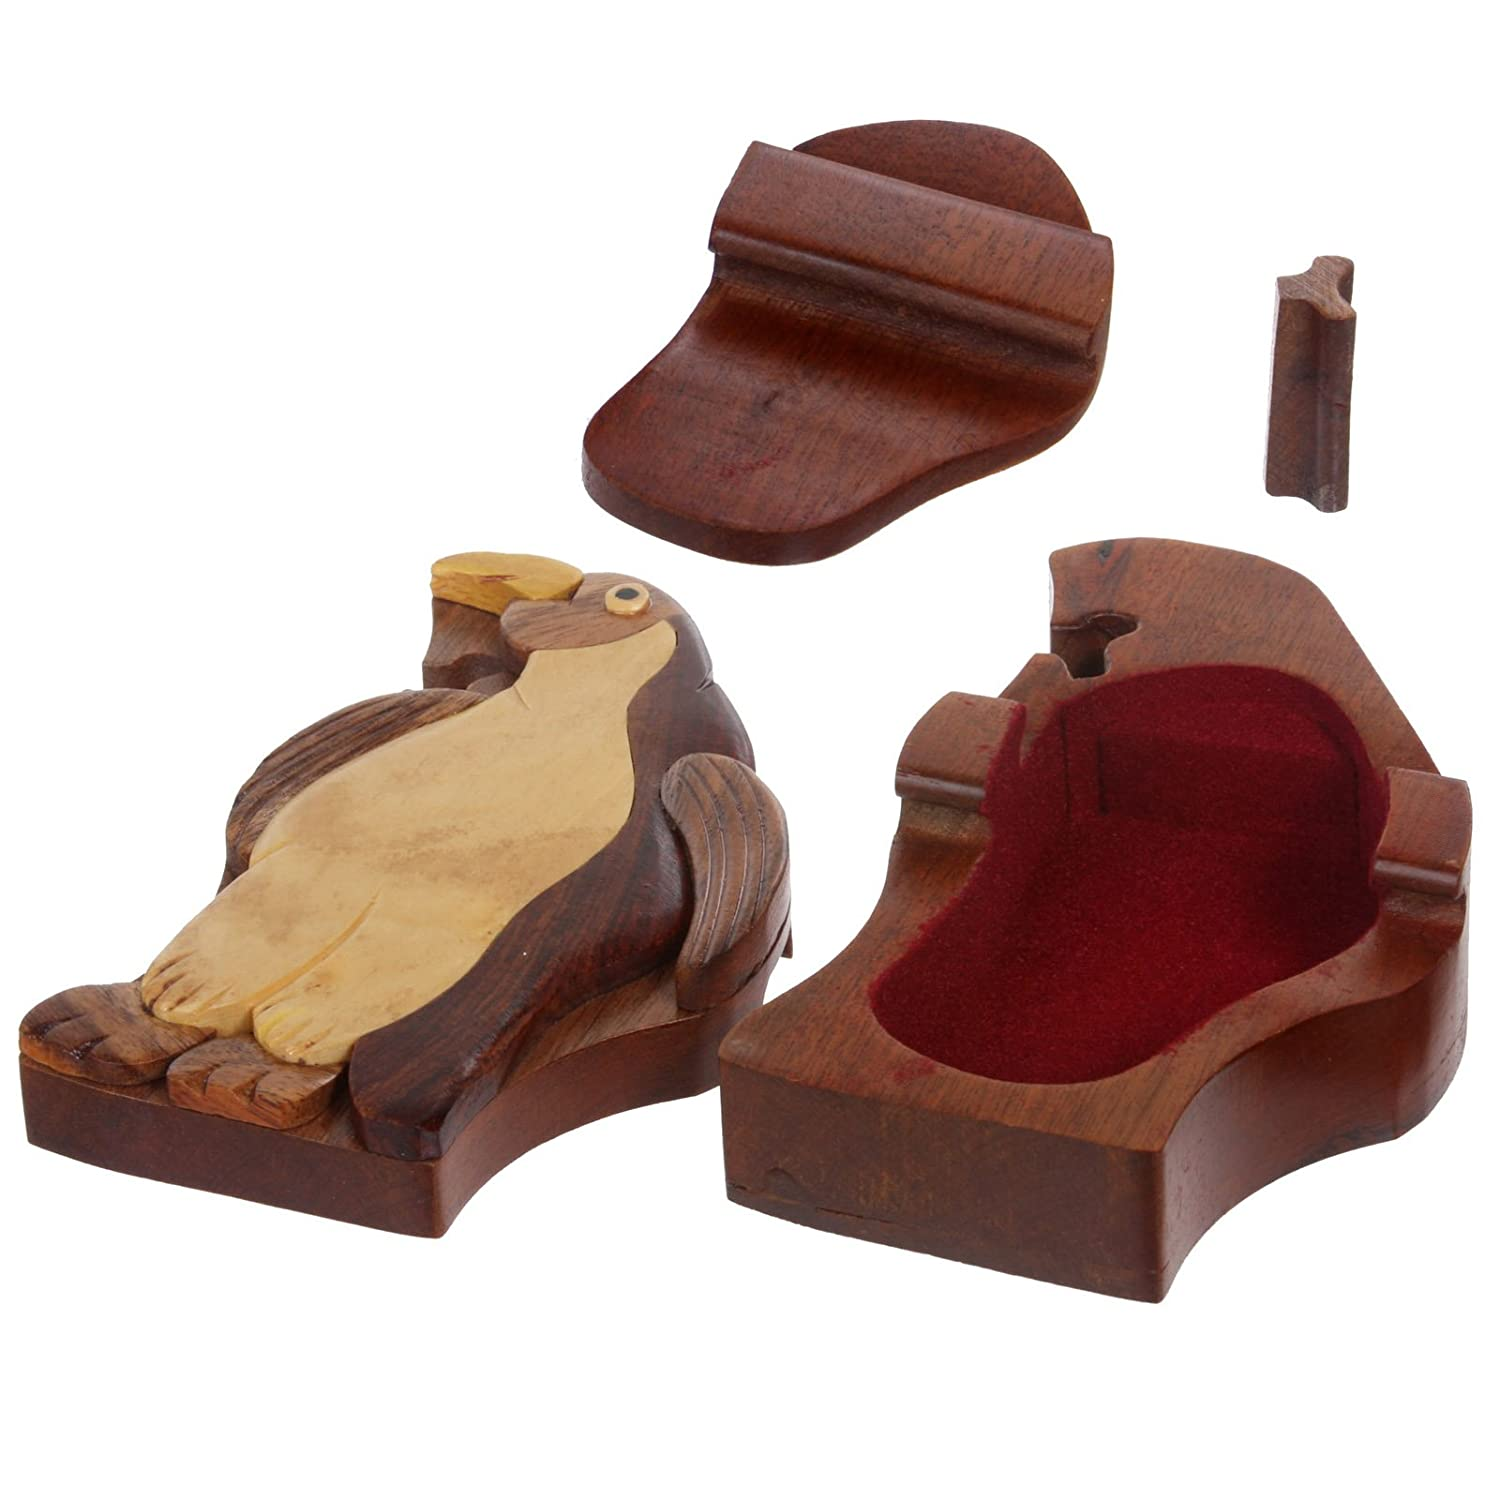 Amazon.com: Handcrafted de Madera animal forma Secreto joyas ...